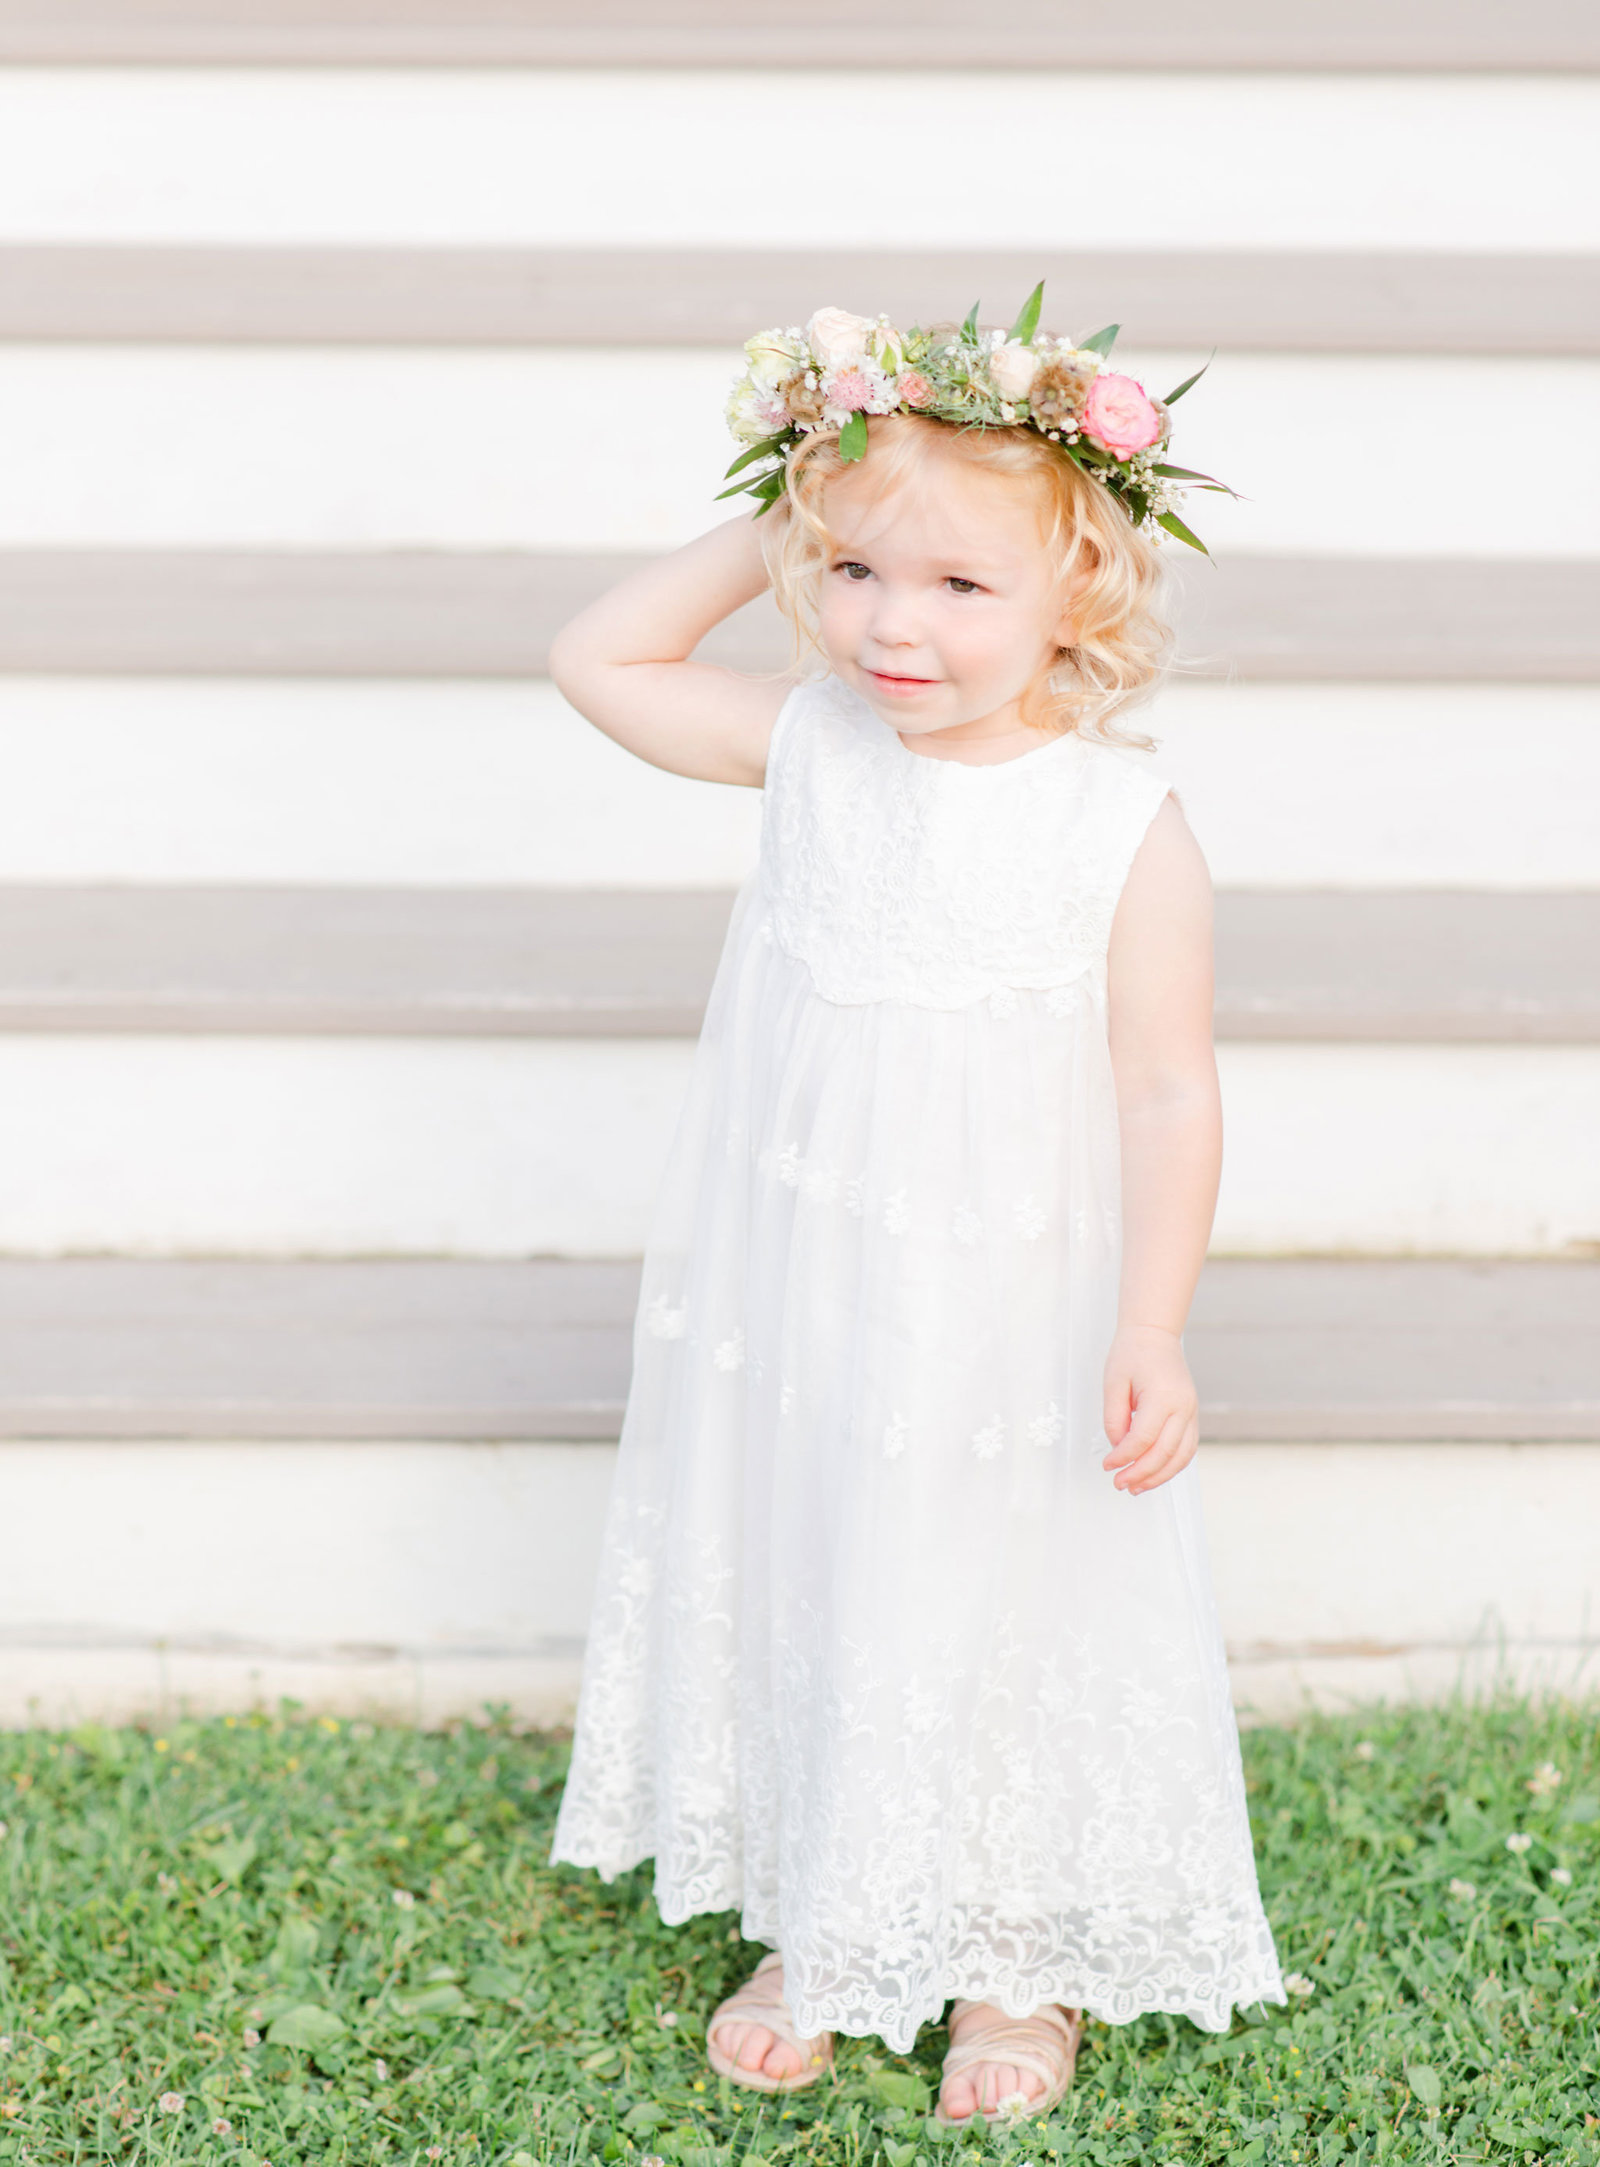 Young girl in white dress and floral crown